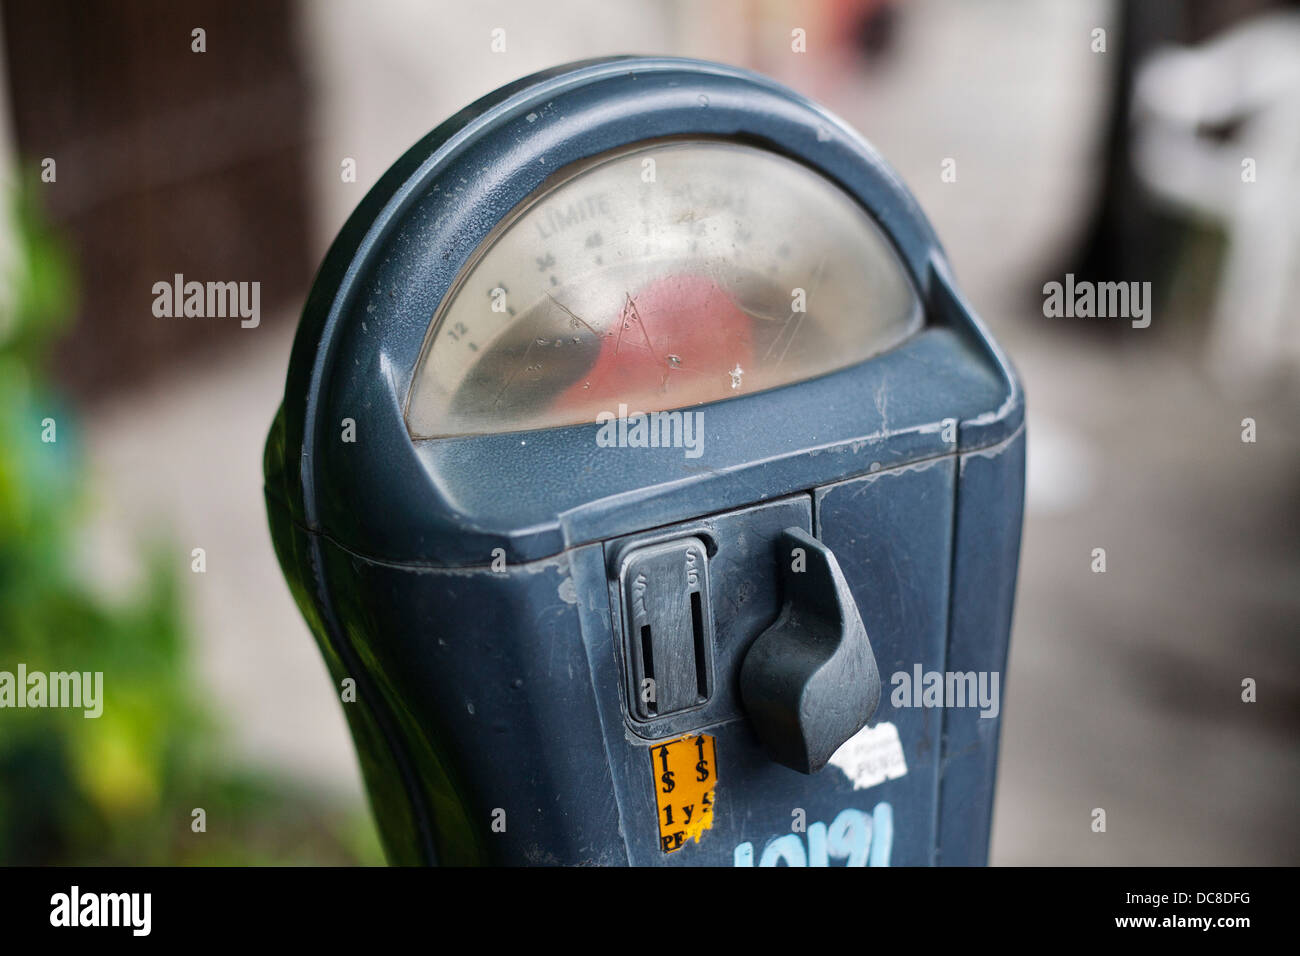 A parking meter in Monterrey, Mexico. - Stock Image